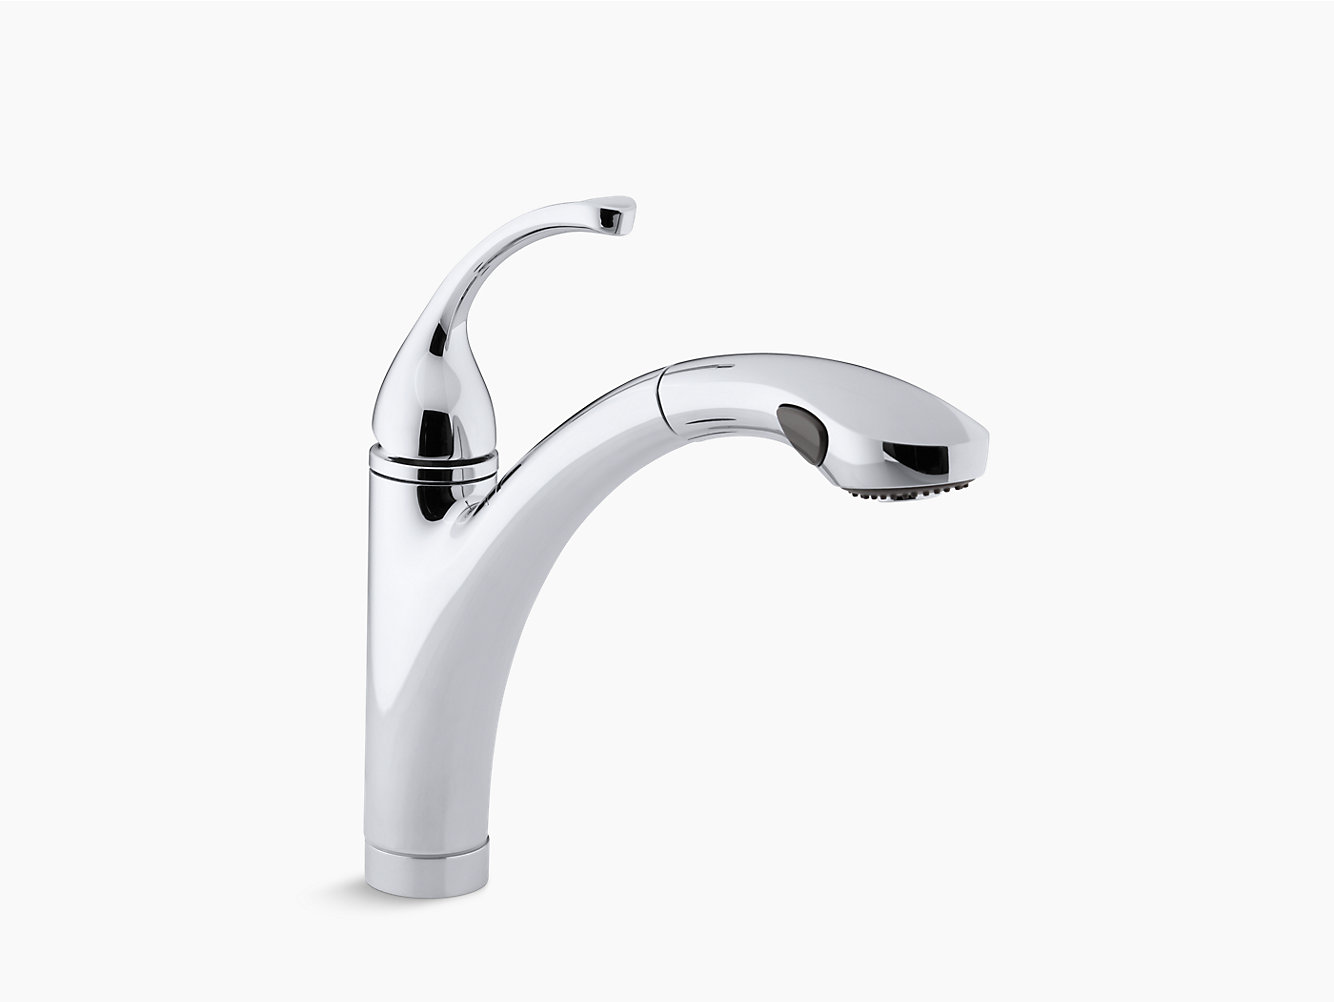 KOHLER | 10433 | Forté single-hole or 3-hole kitchen sink faucet ...